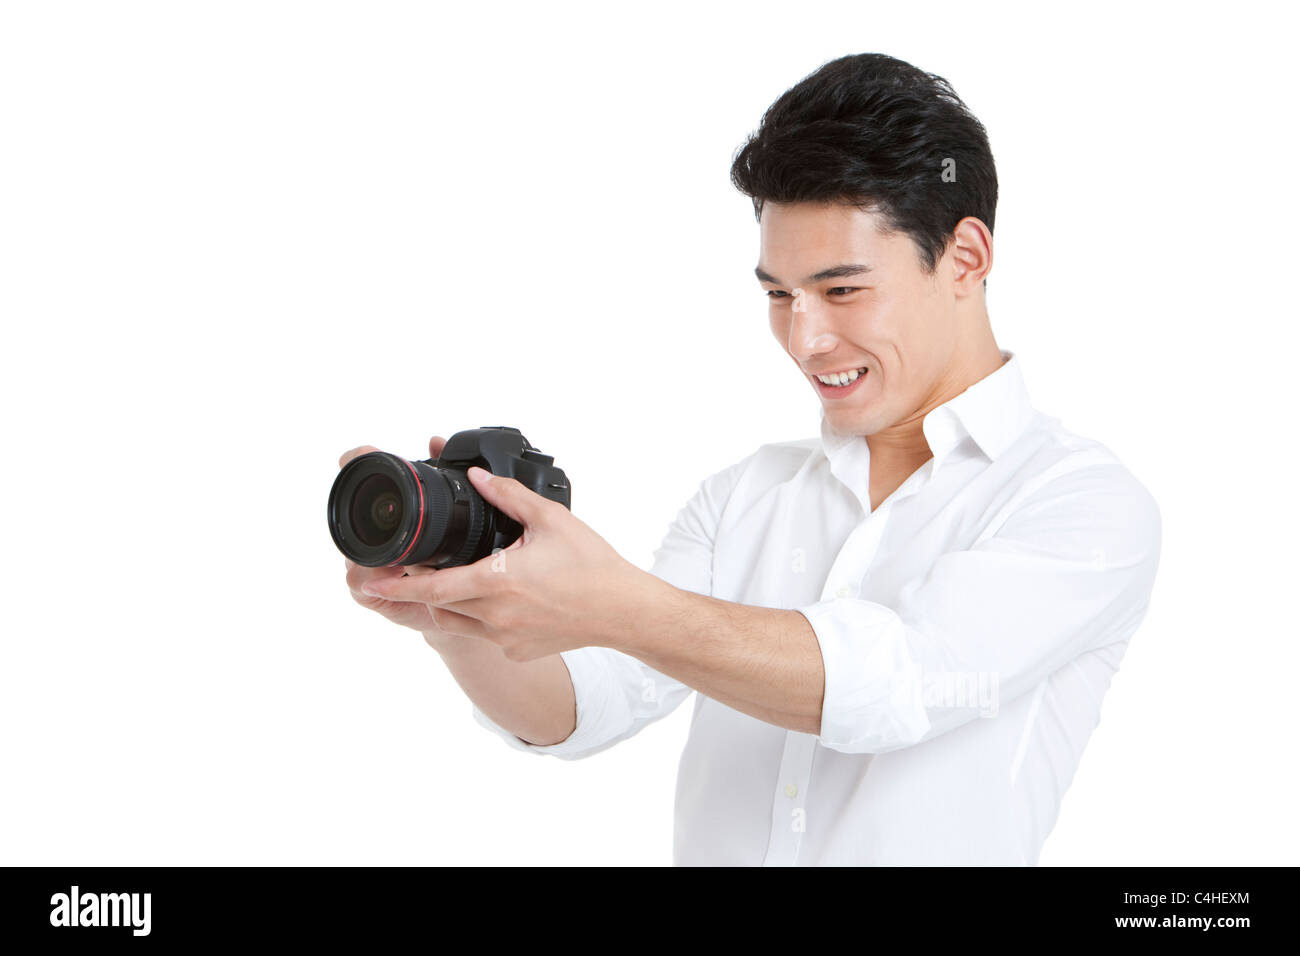 Young man taking photos - Stock Image